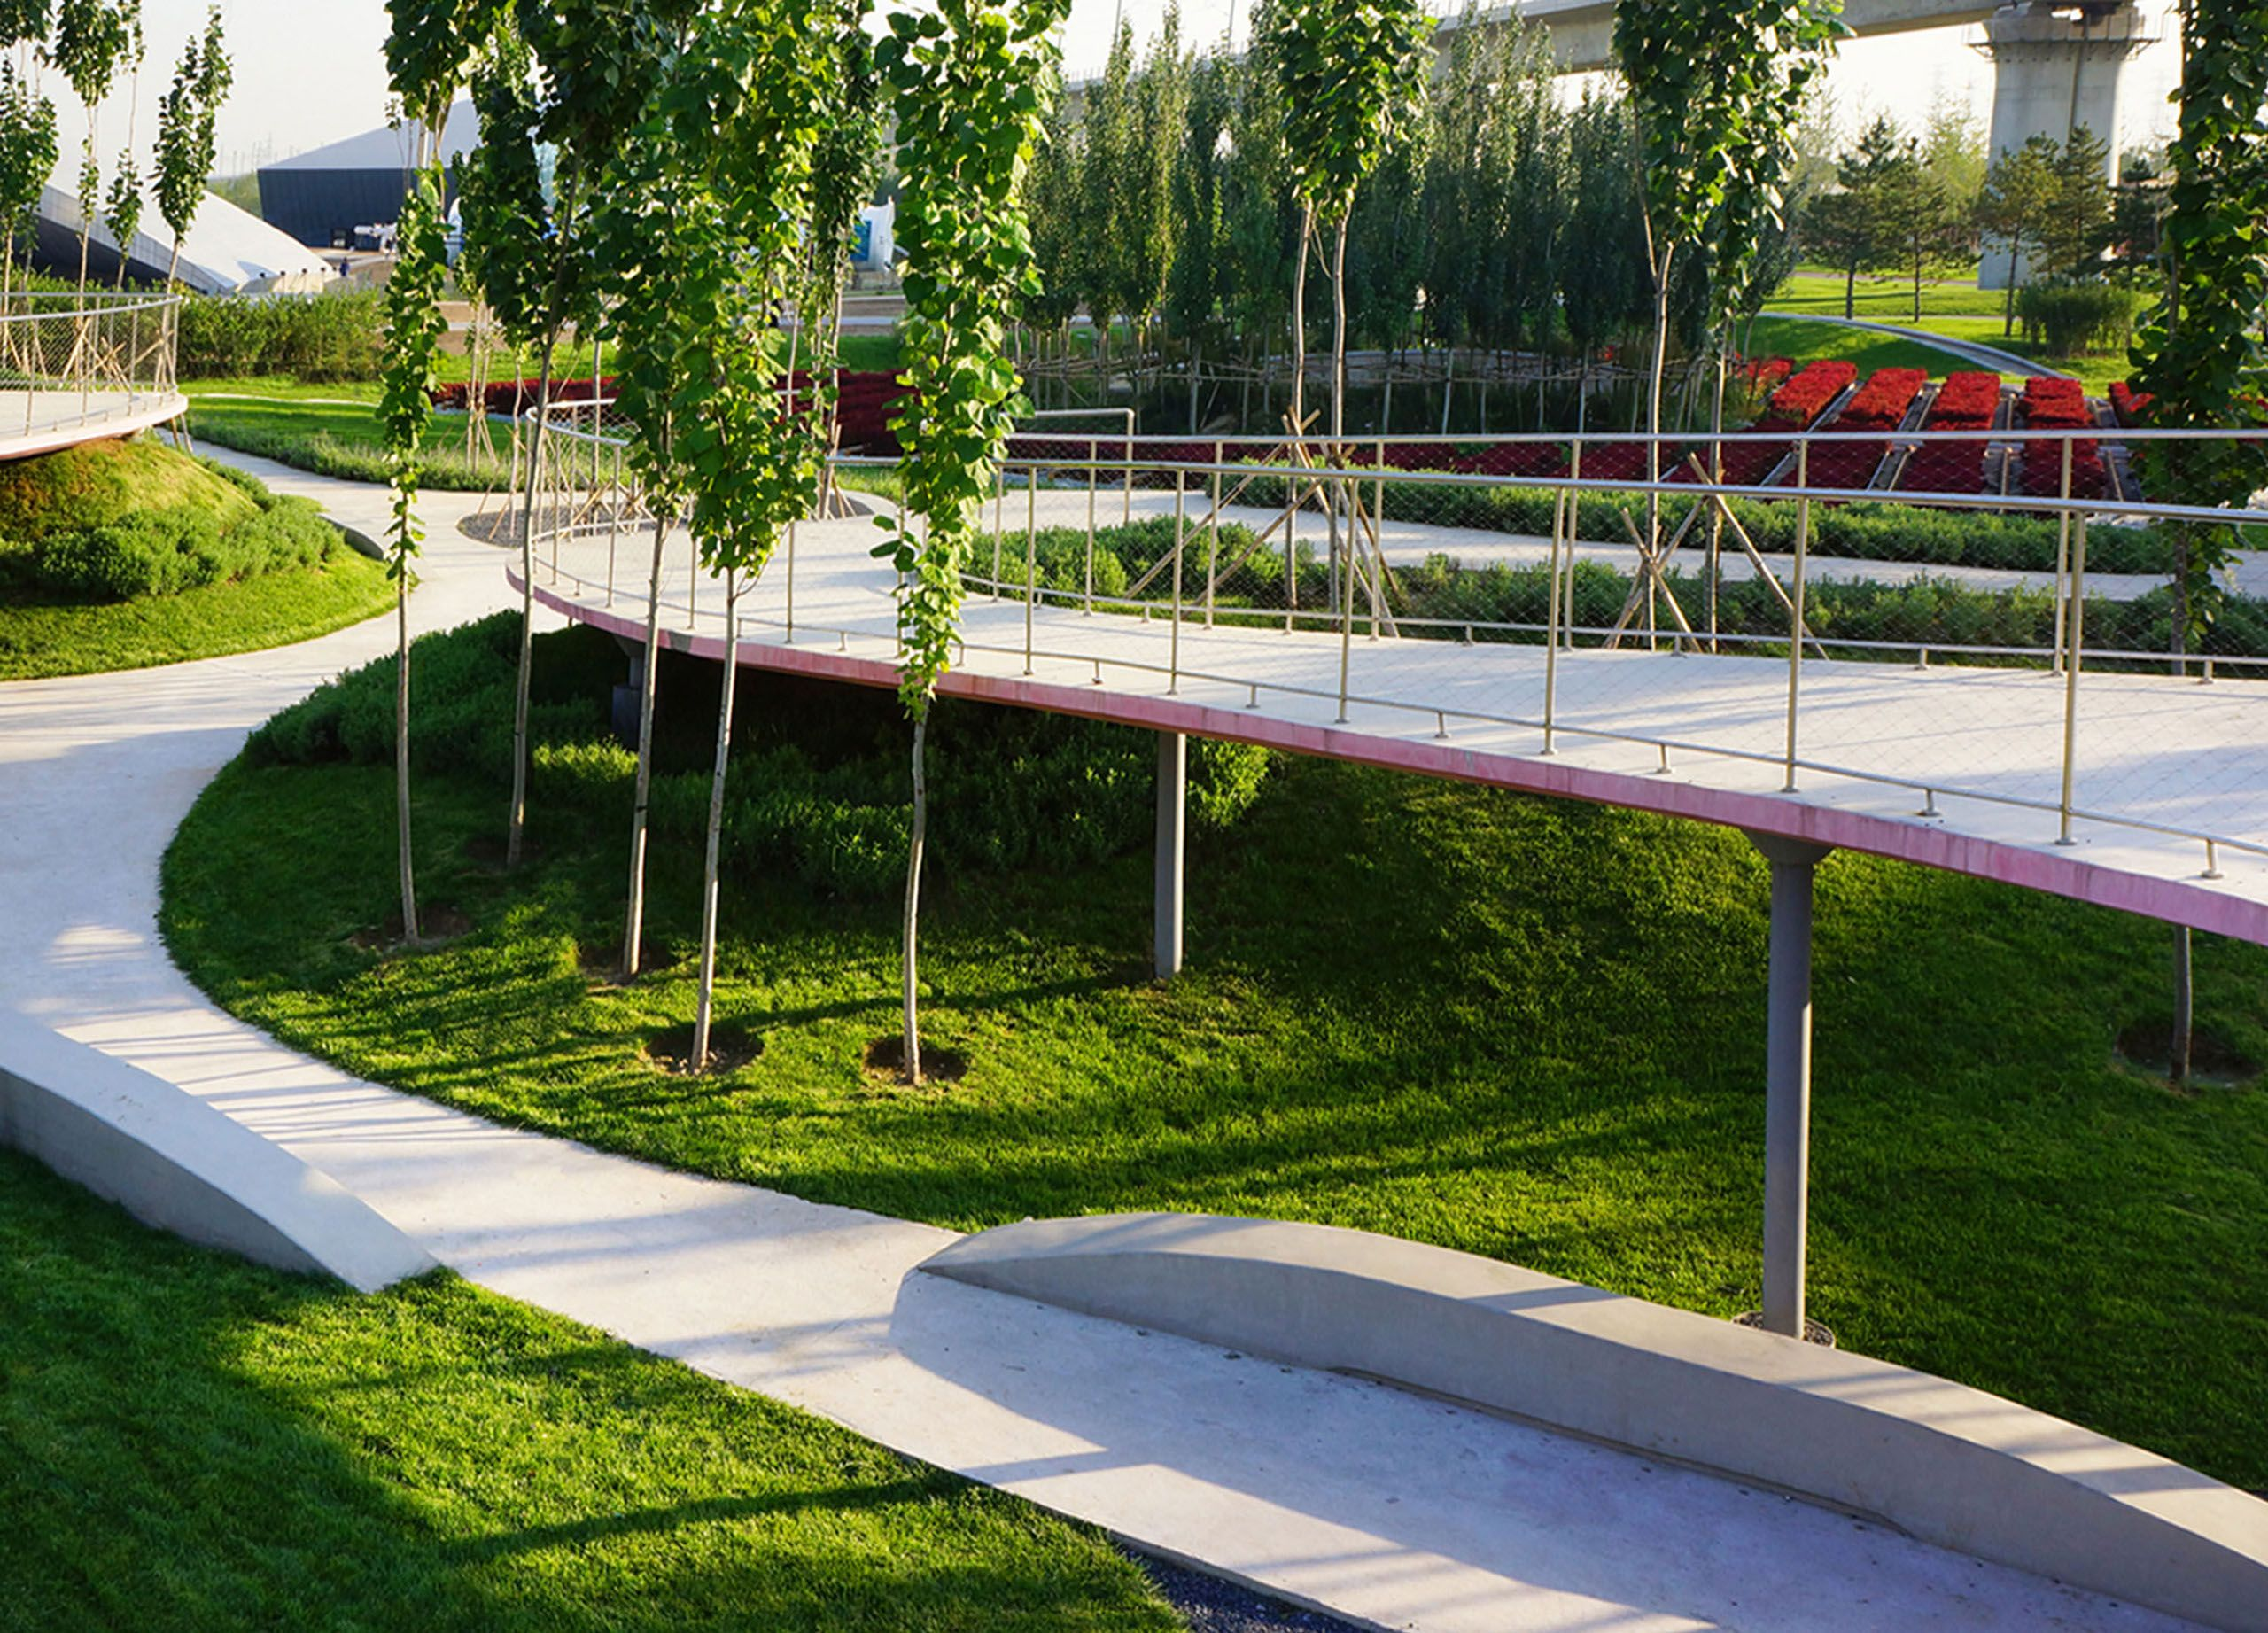 Beijing Expo Garden Bridge Path And Bench Photograph Of Built Installation  Project